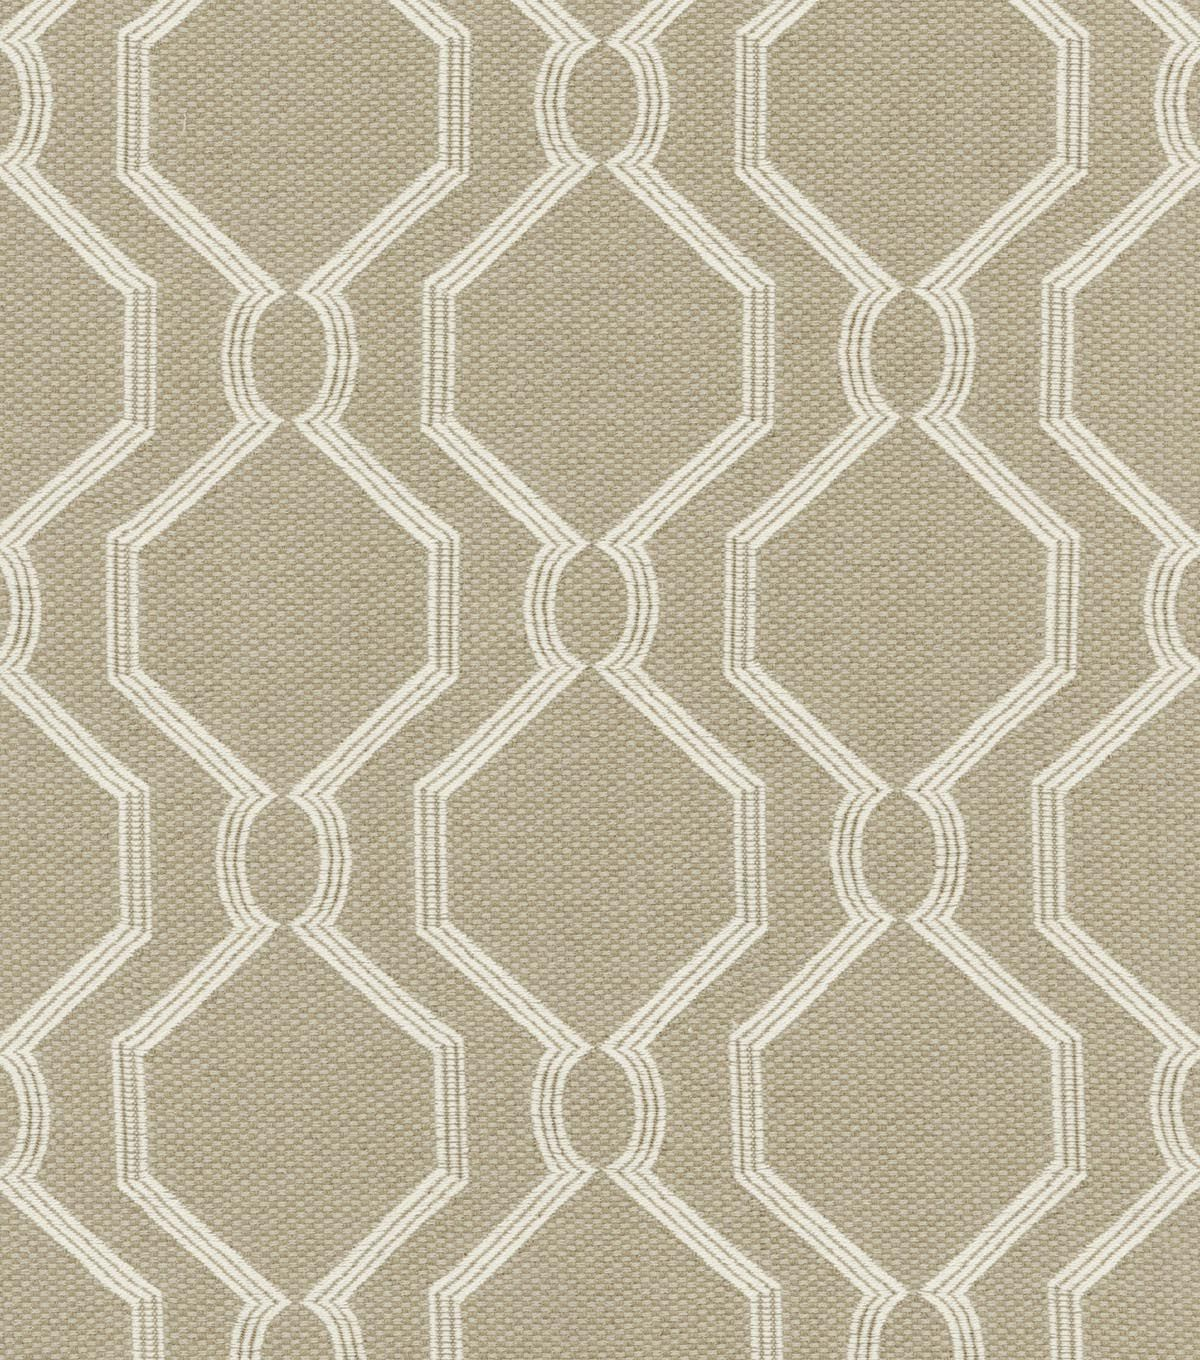 P K Lifestyles Multi Purpose Decor Fabric 54 Laneway Linen